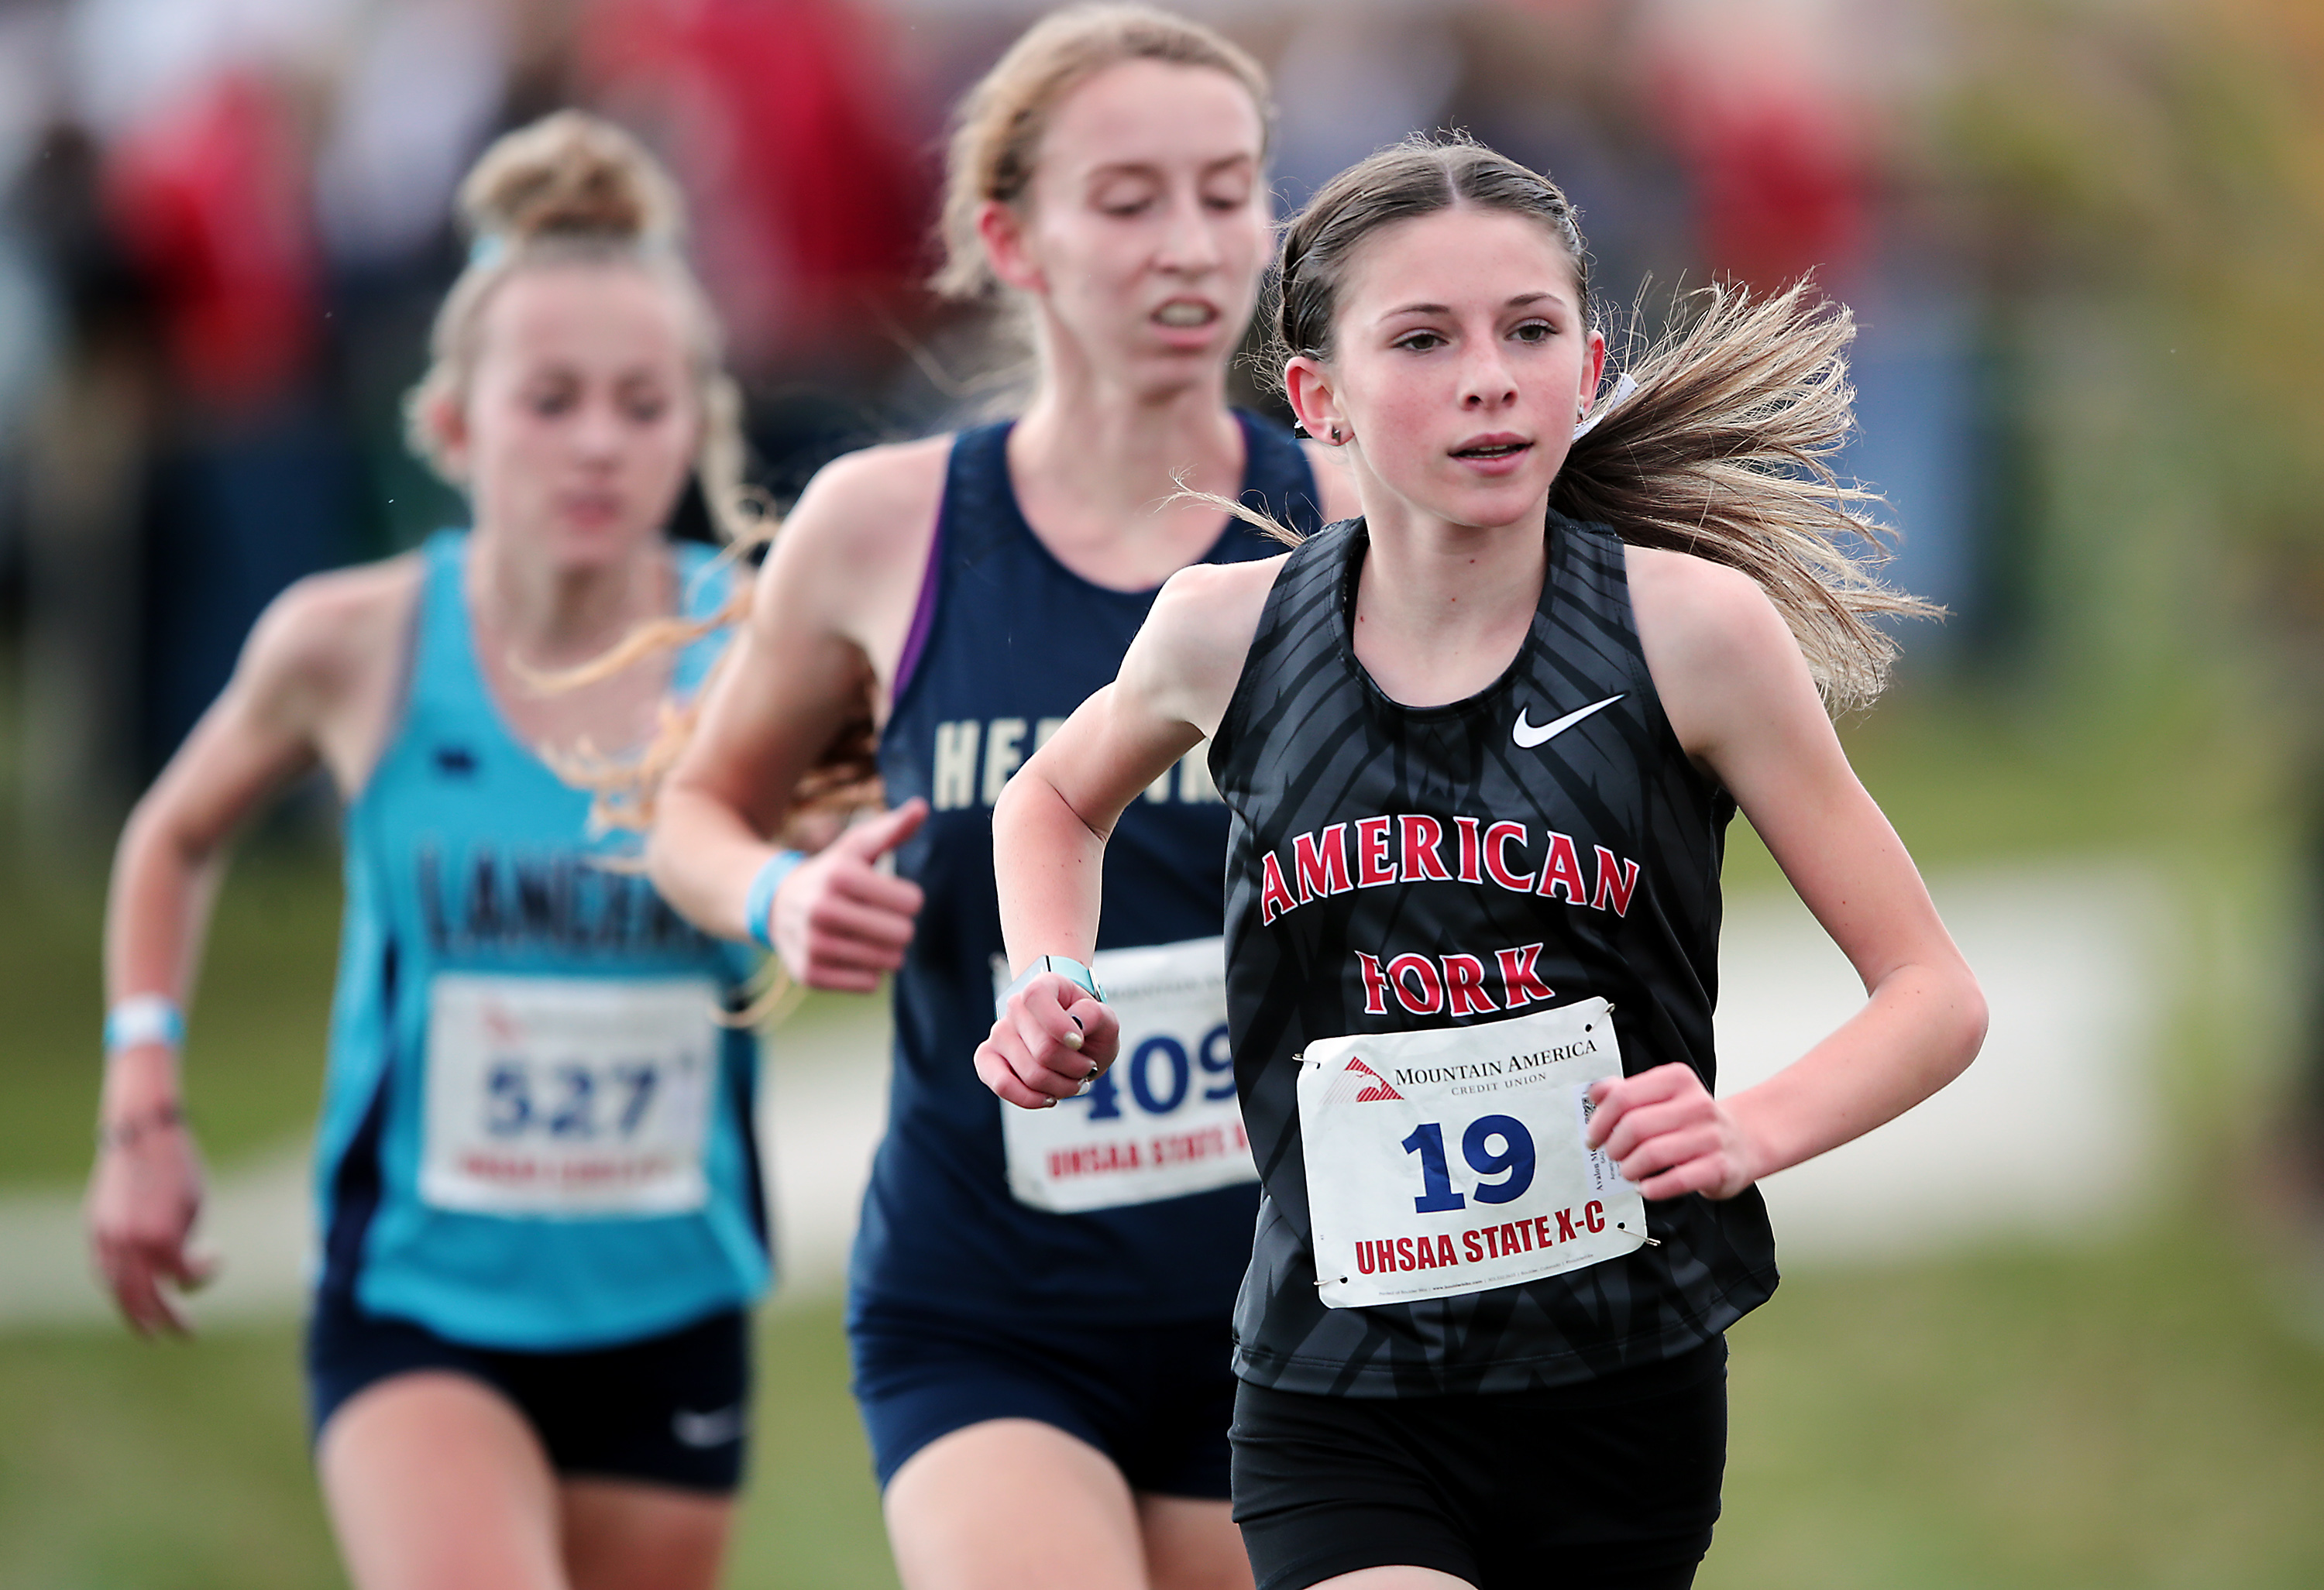 American Fork's Avalon Mecham looks ahead as she runs in the 6A girls cross-country state championship.